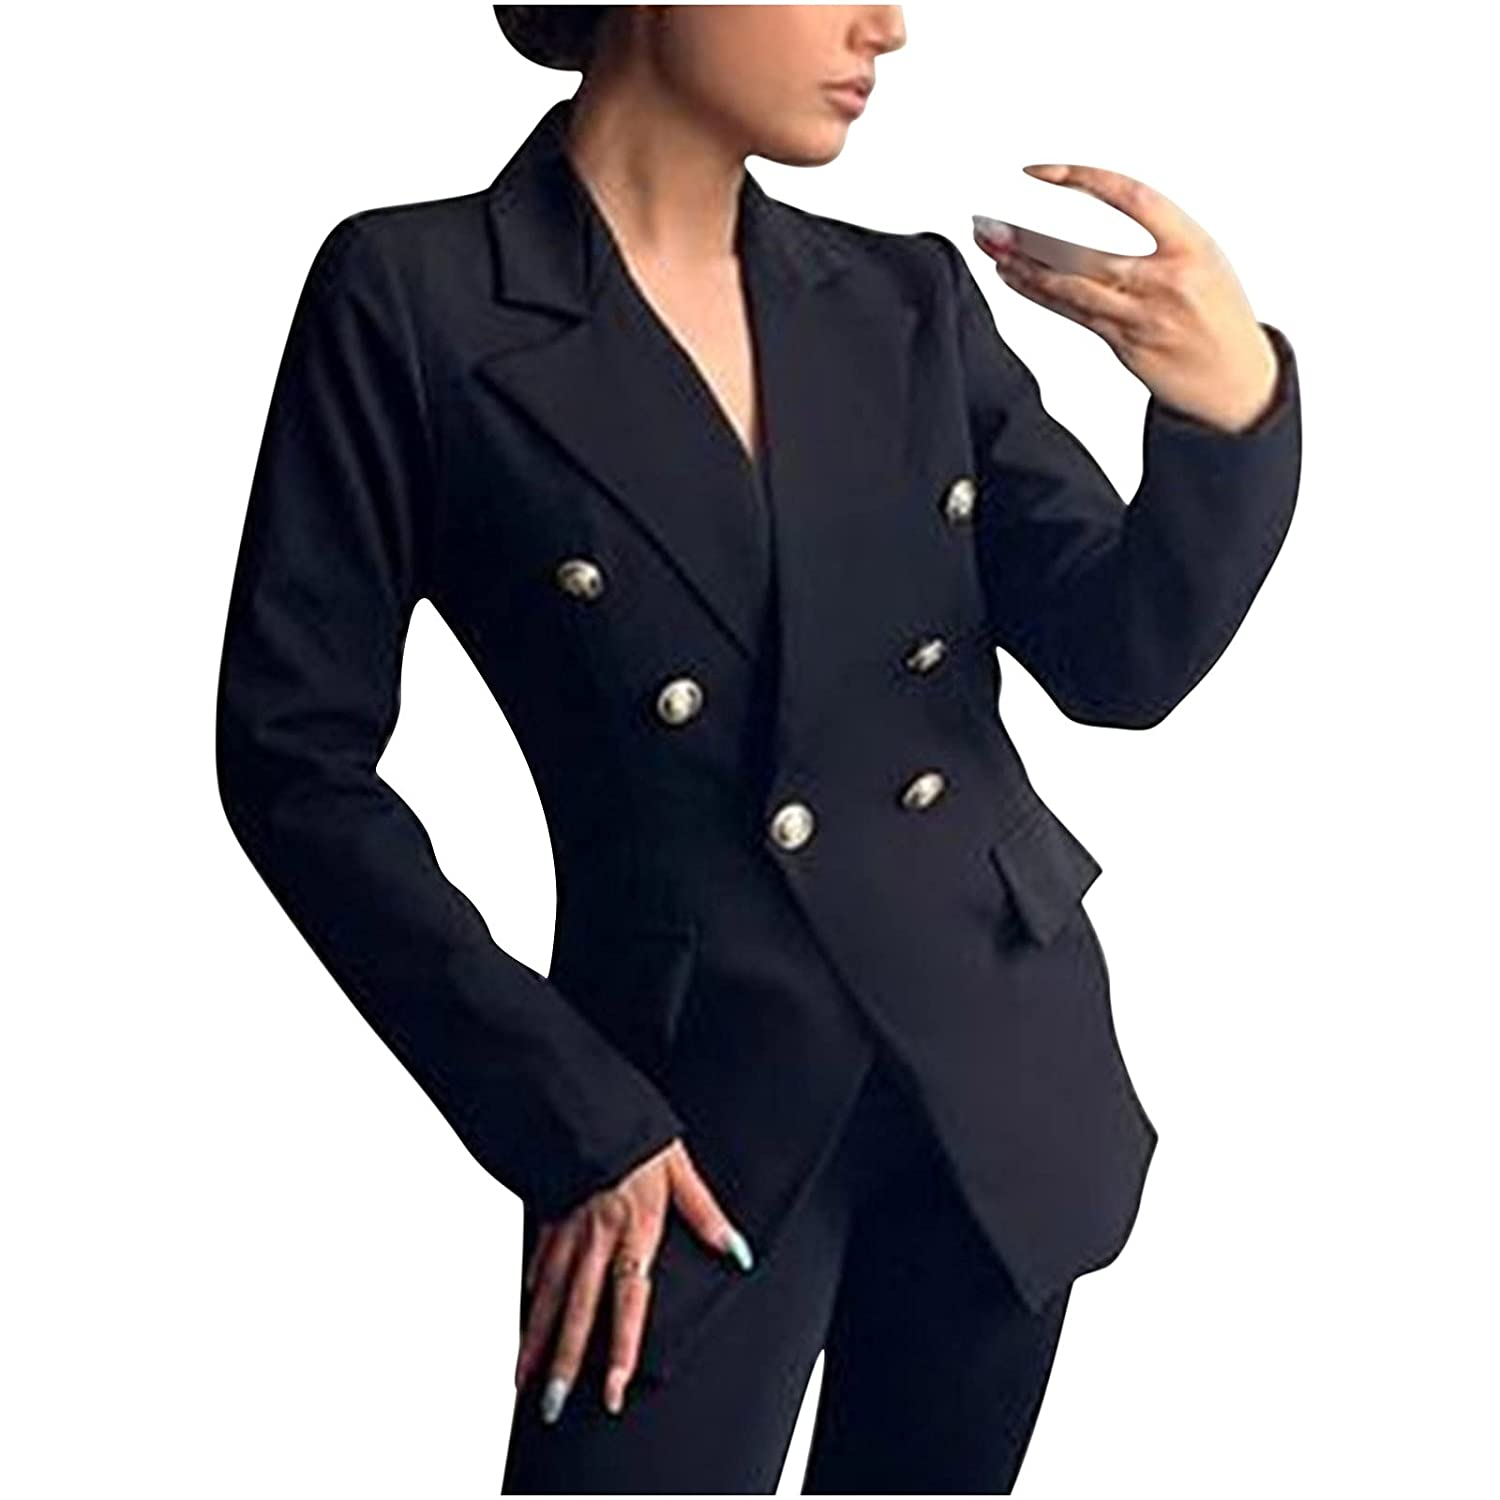 Autumn Women's Long-Sleeved Max 71% OFF Slim Suit Double-Breasted Some reservation mid-Length